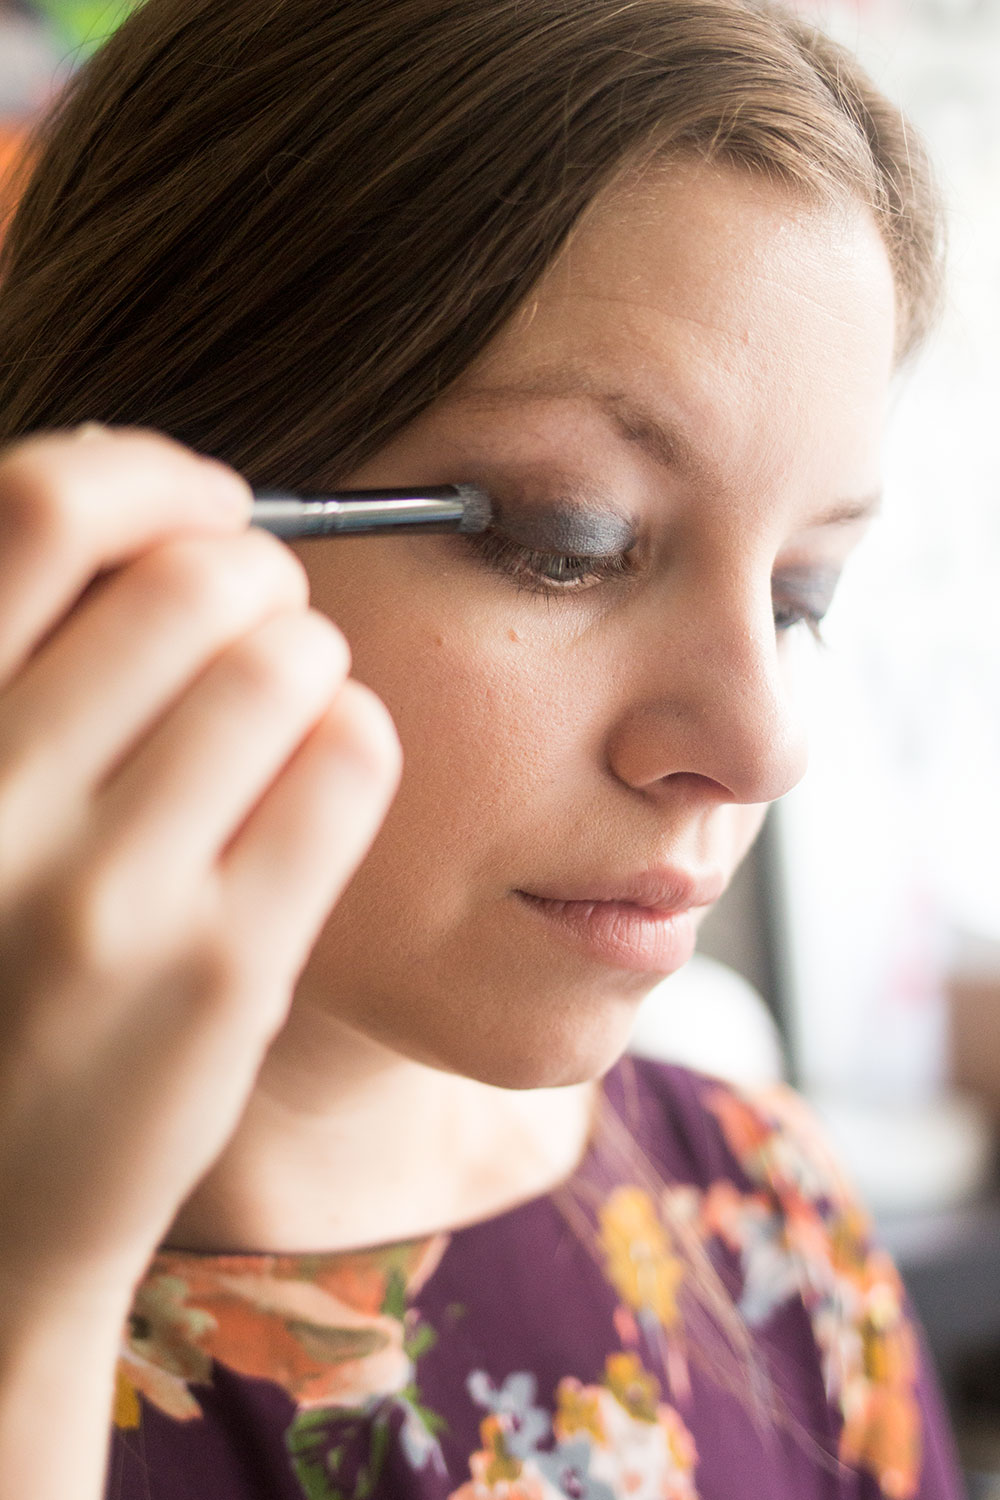 Sephora Inside JCPenney Makeup Tutorial // Hello Rigby Seattle Beauty Blog